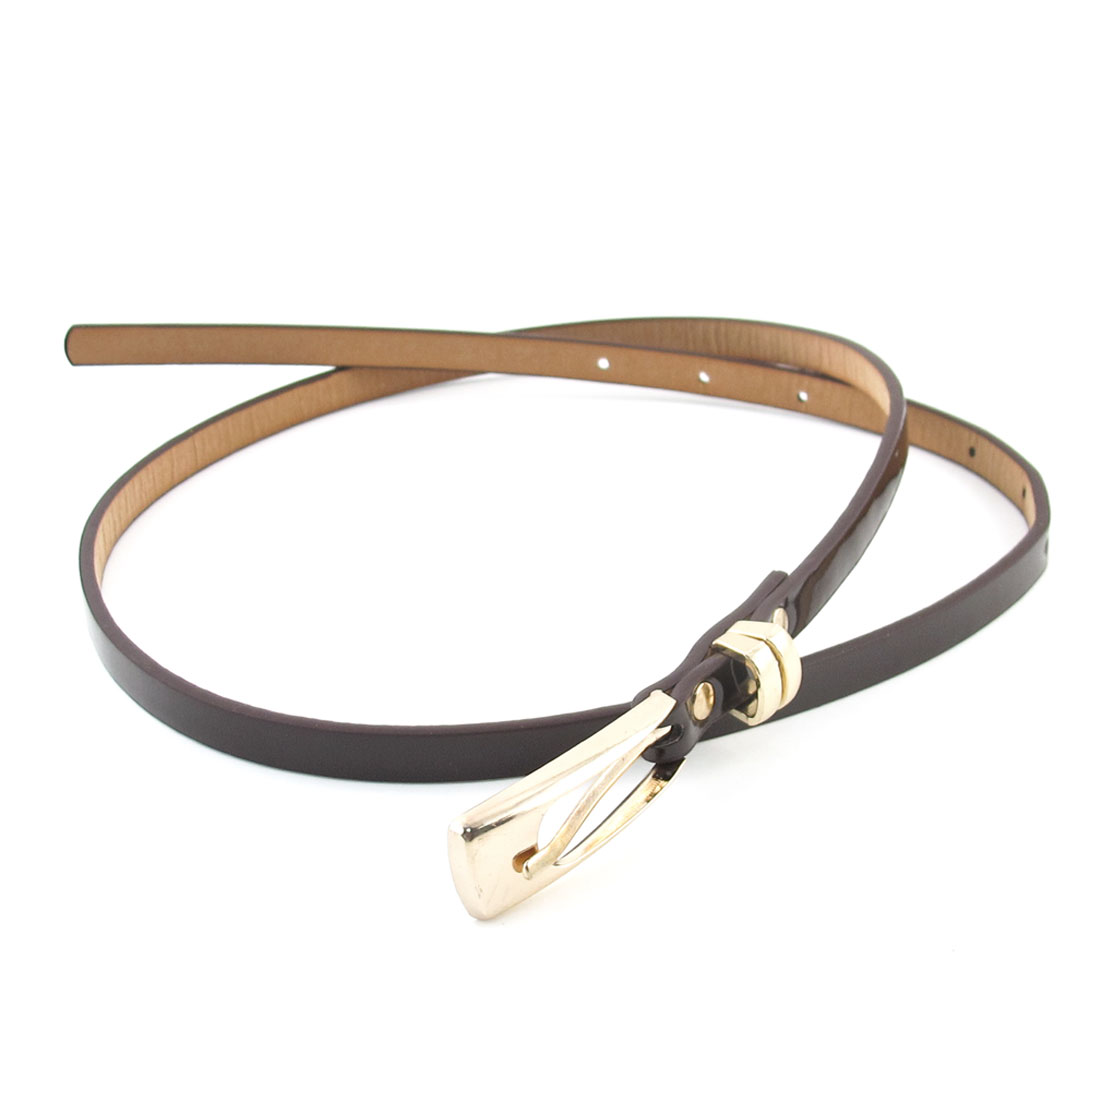 Single Pin Metal Buckle Dark Brown Faux Leather Waist Belt for Lady